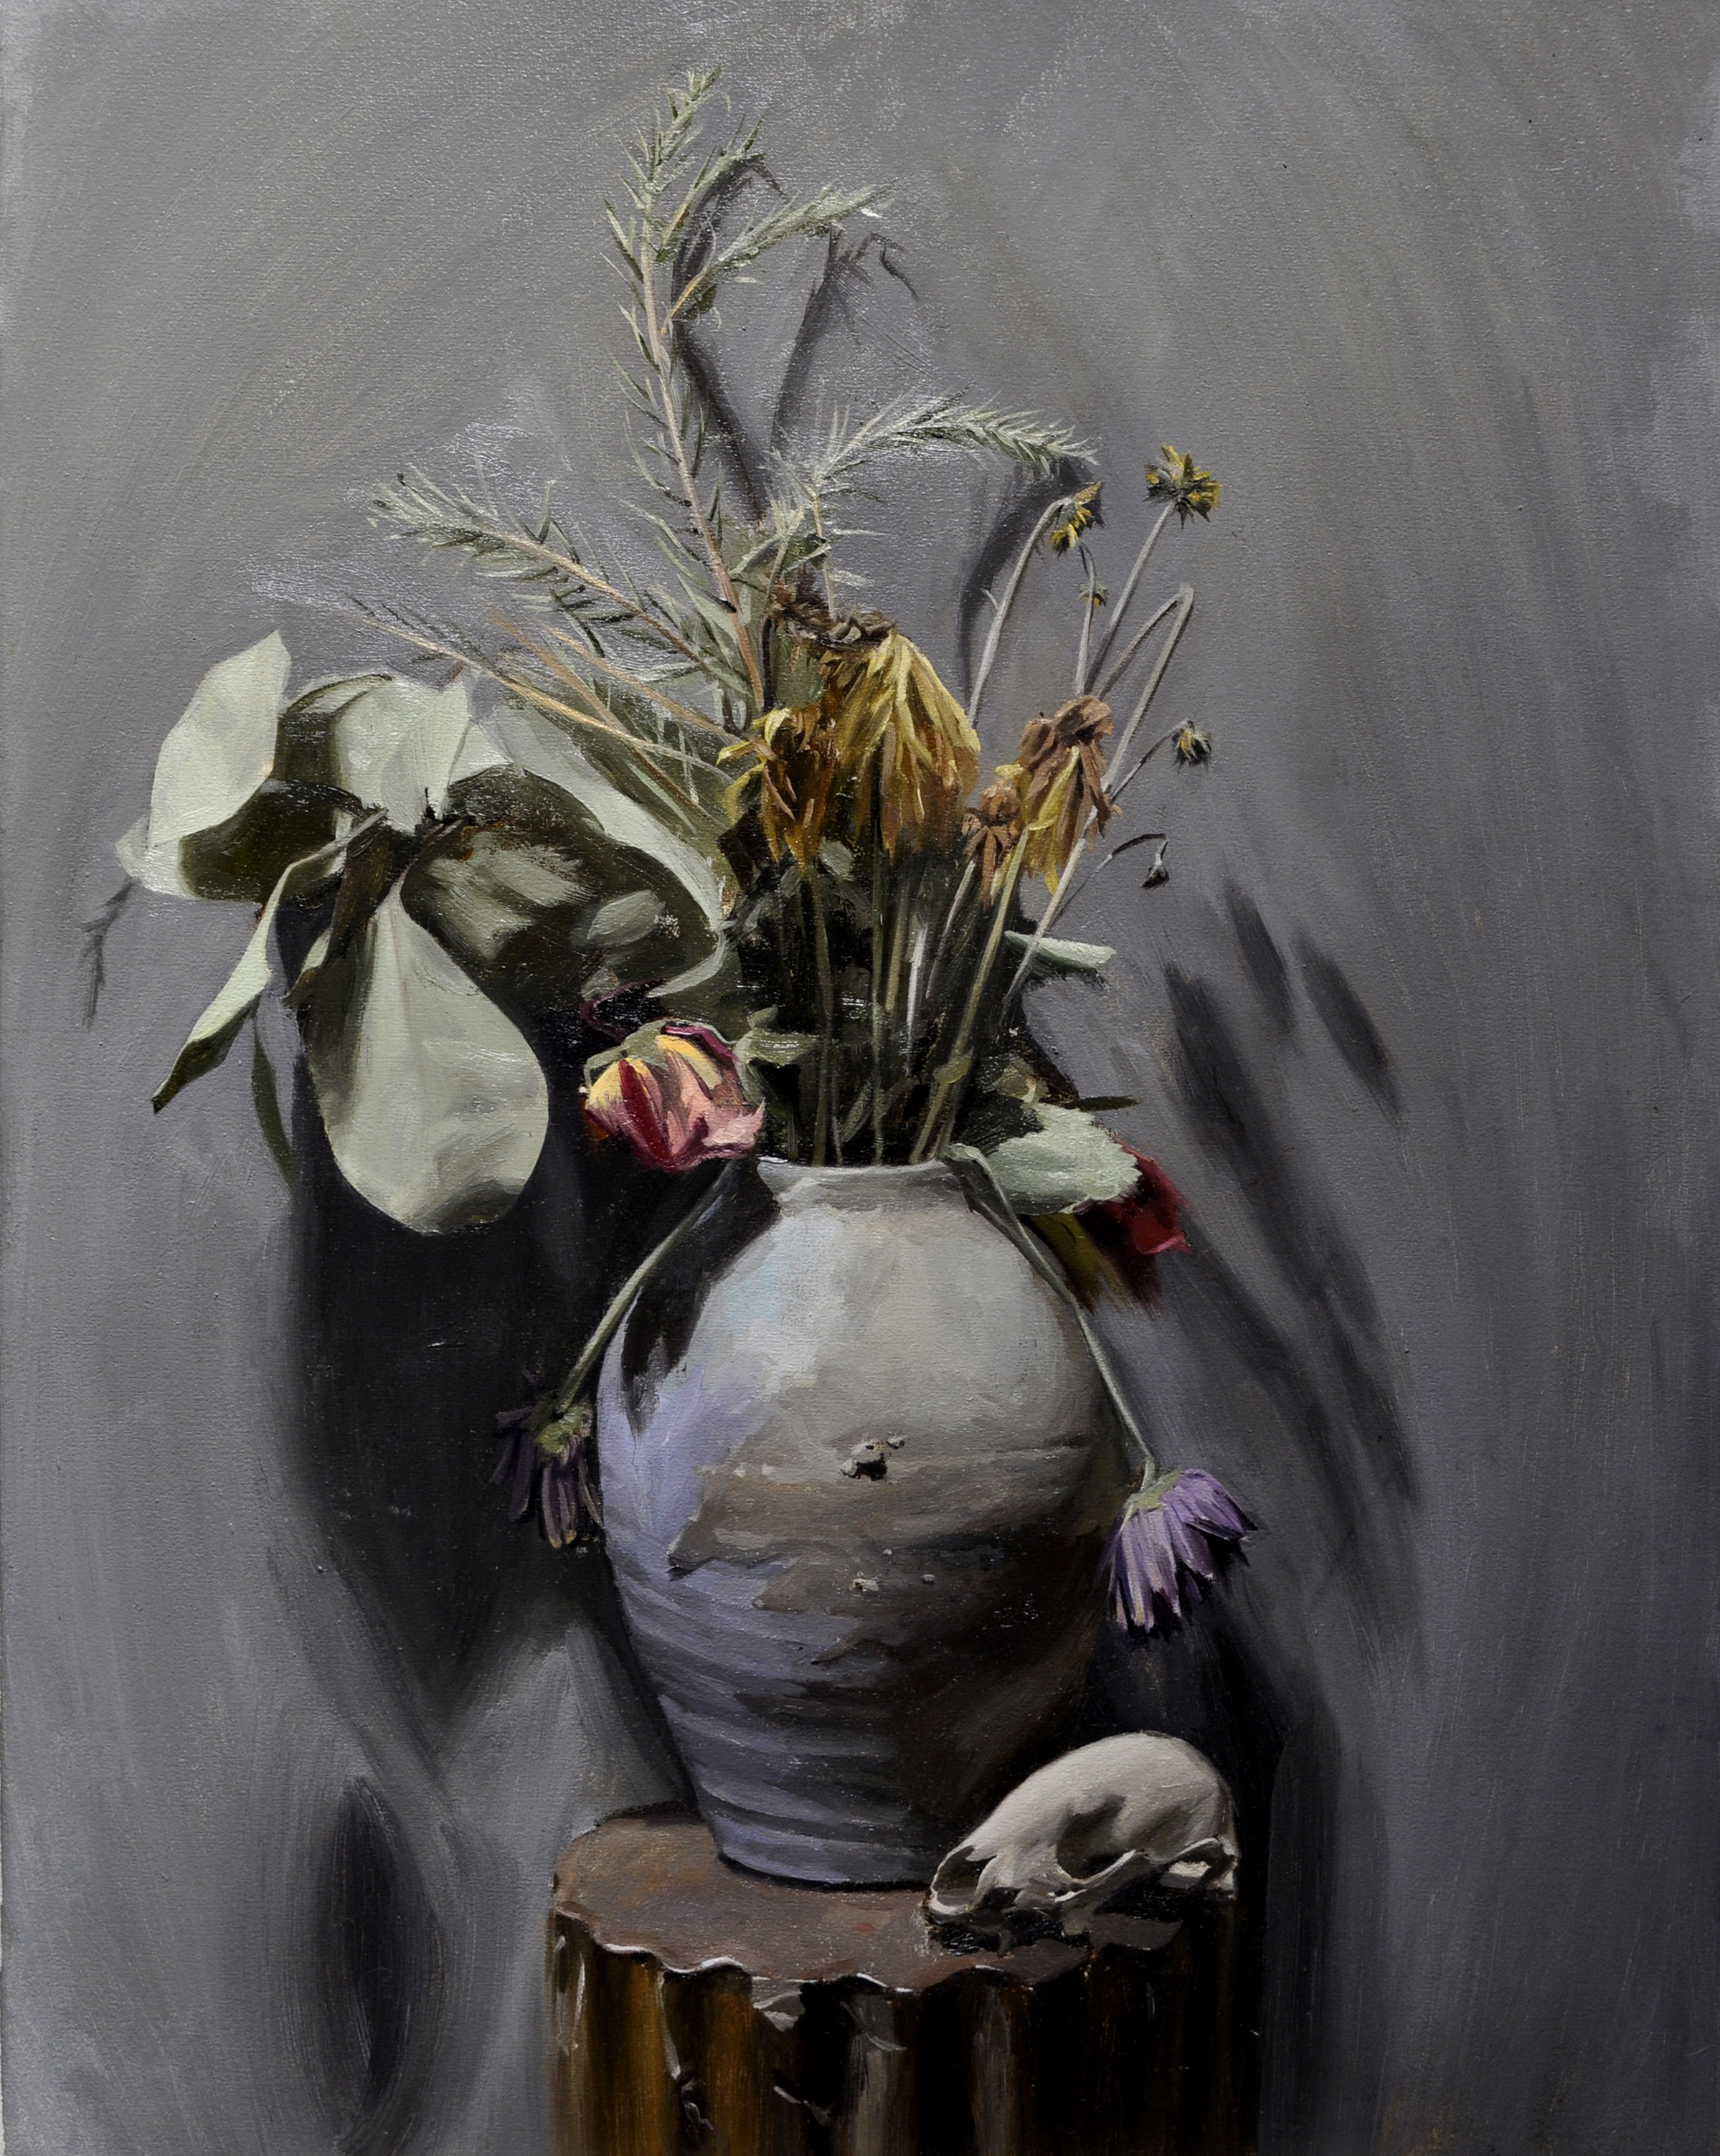 Vanitas oil on linen, 2014 18 x 24 inches